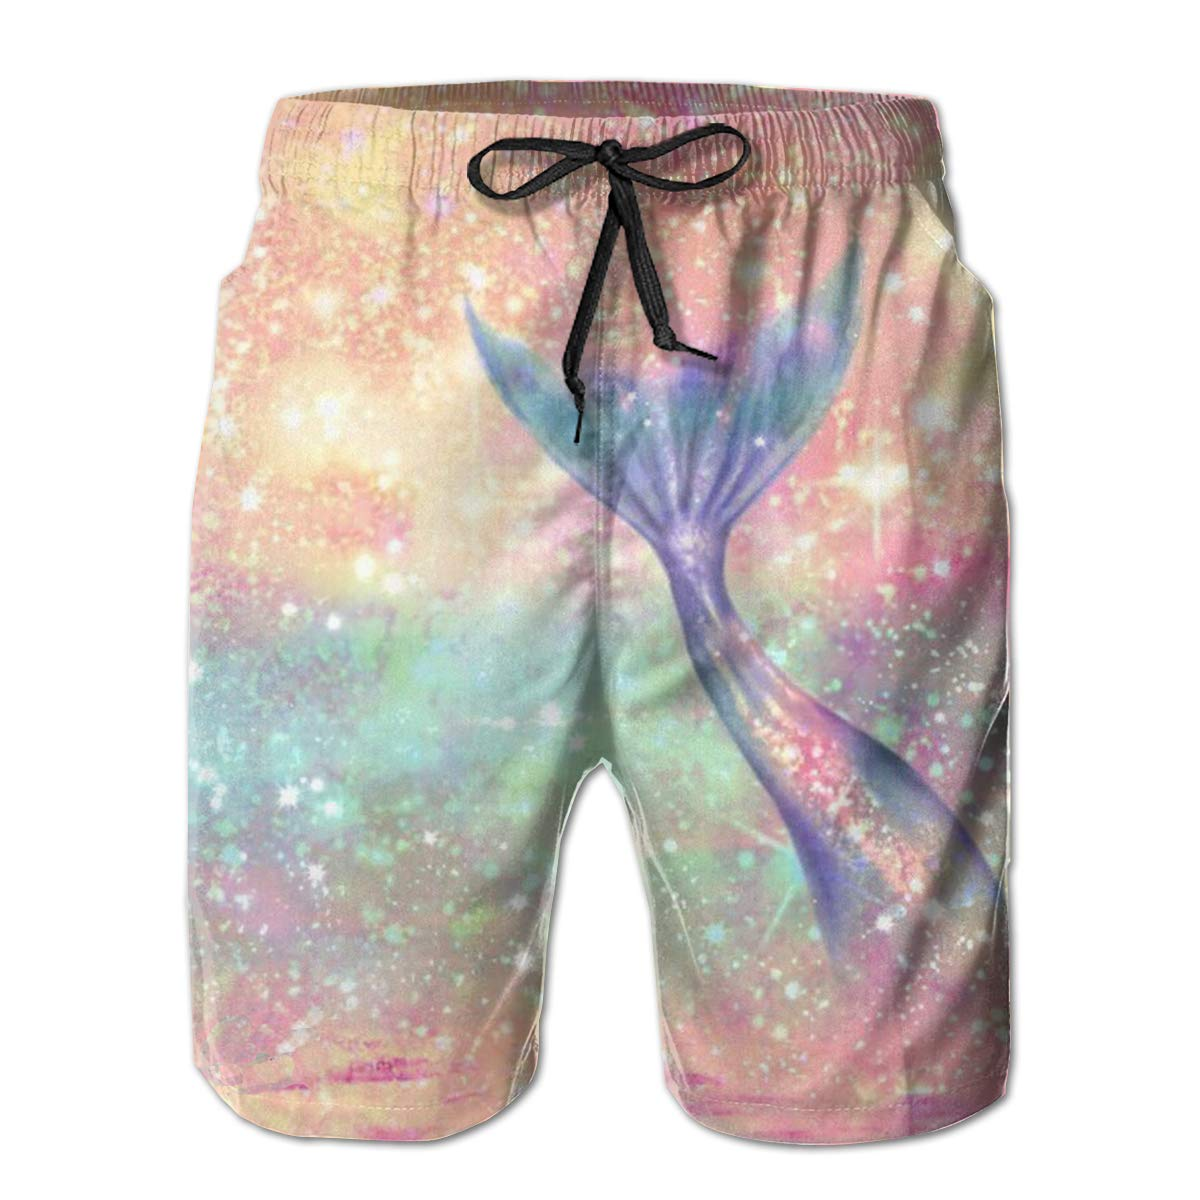 MikonsuGlitter Pink Mermaid Mens Swim Trunks Quick Dry Bathing Suits Beach Holiday Party Board Shorts